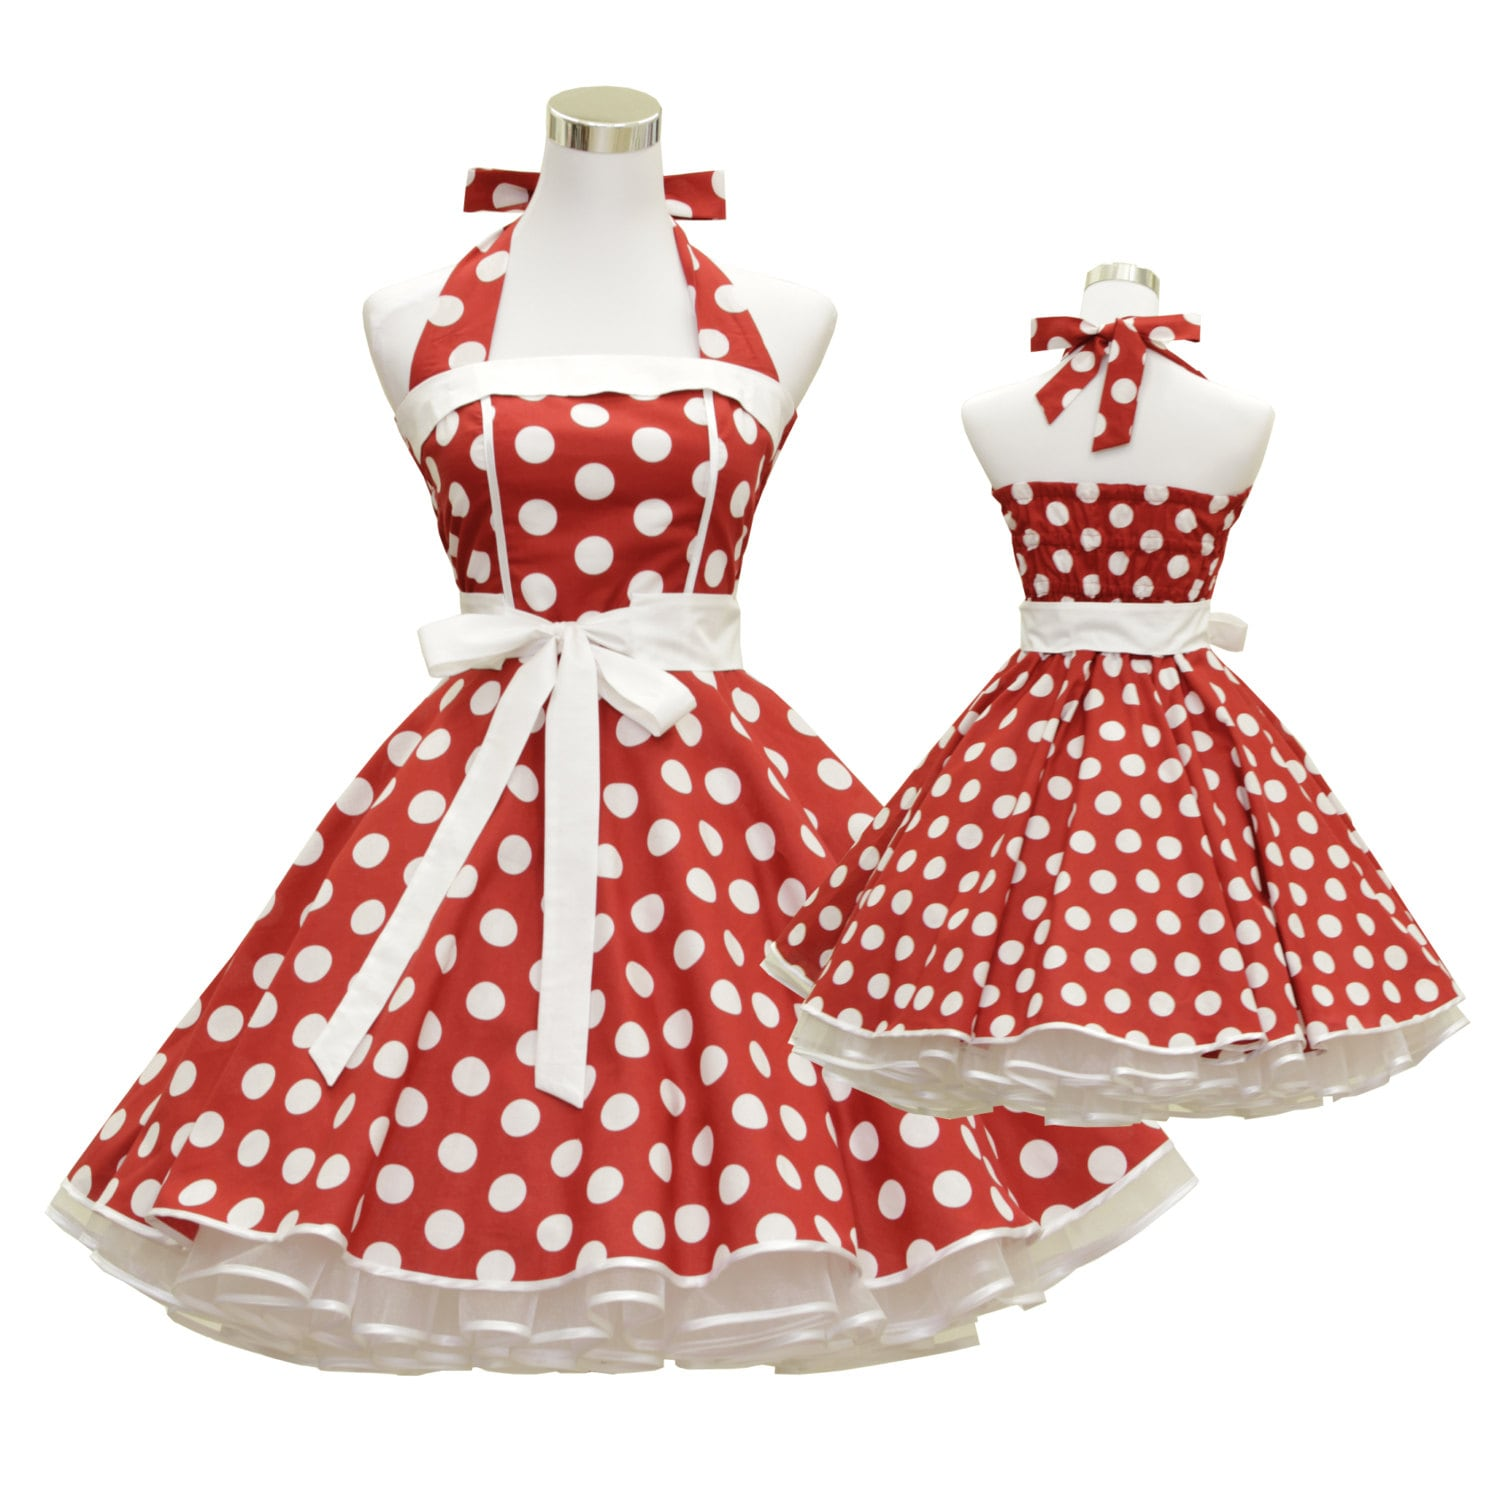 50\'s vintage dress full skirt red white polka dots classic